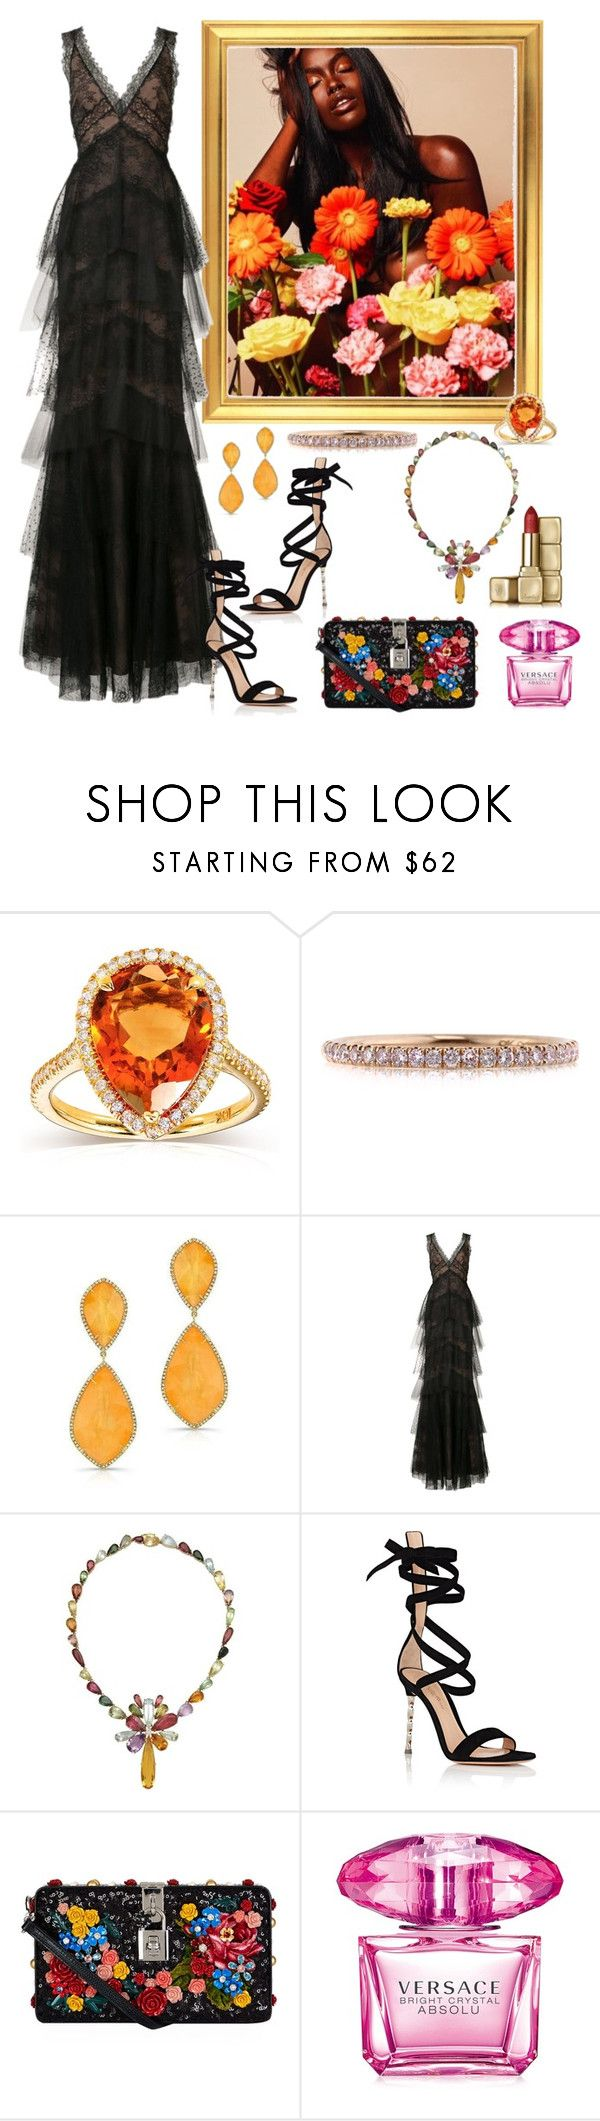 """""""Shine Bright"""" by aharcaki on Polyvore featuring Annello, Mark Broumand, Notte by Marchesa, Gianvito Rossi, Dolce&Gabbana, Versace and Guerlain"""